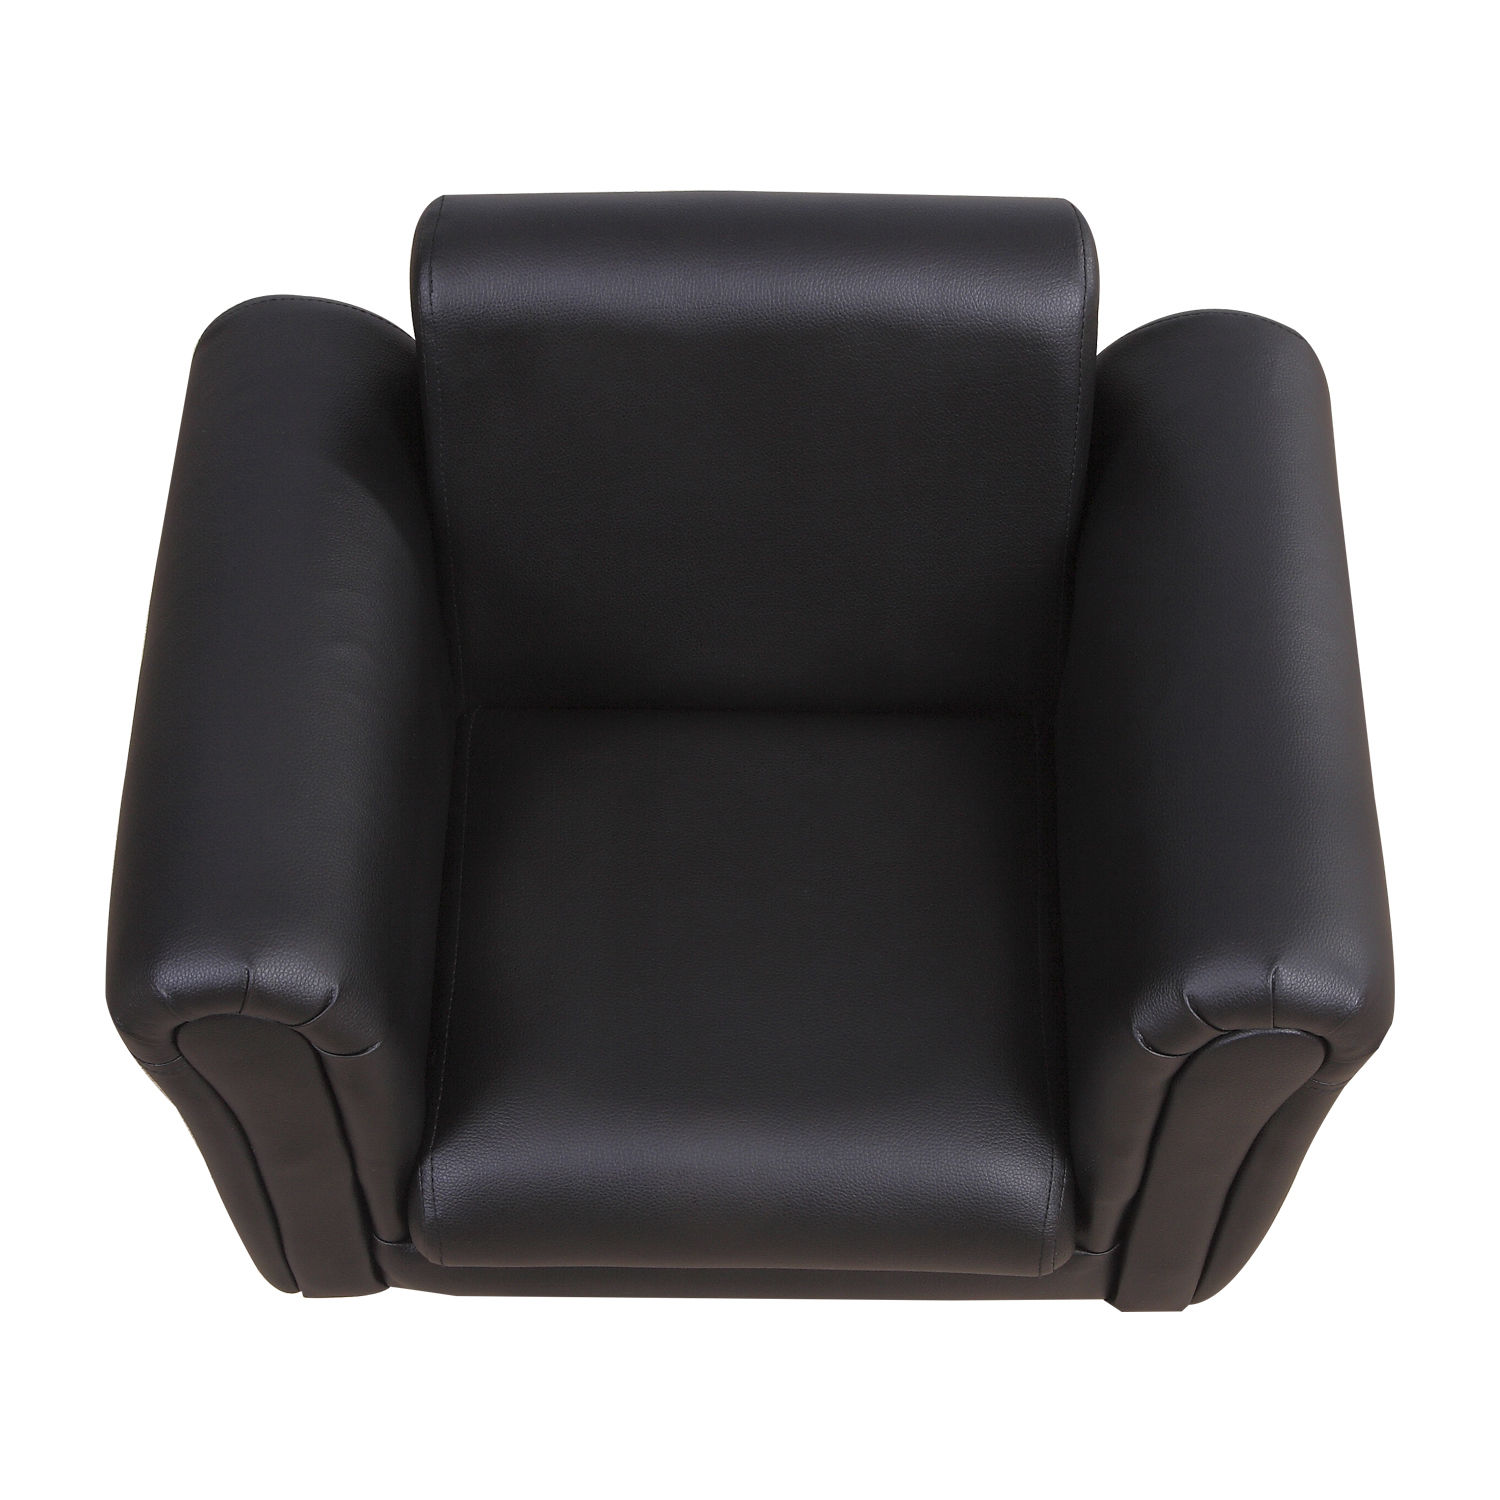 Kids-Sofa-Children-Chair-Seat-Armchair-W-Footstool-Playroom-Bedroom-Black-Pink thumbnail 5